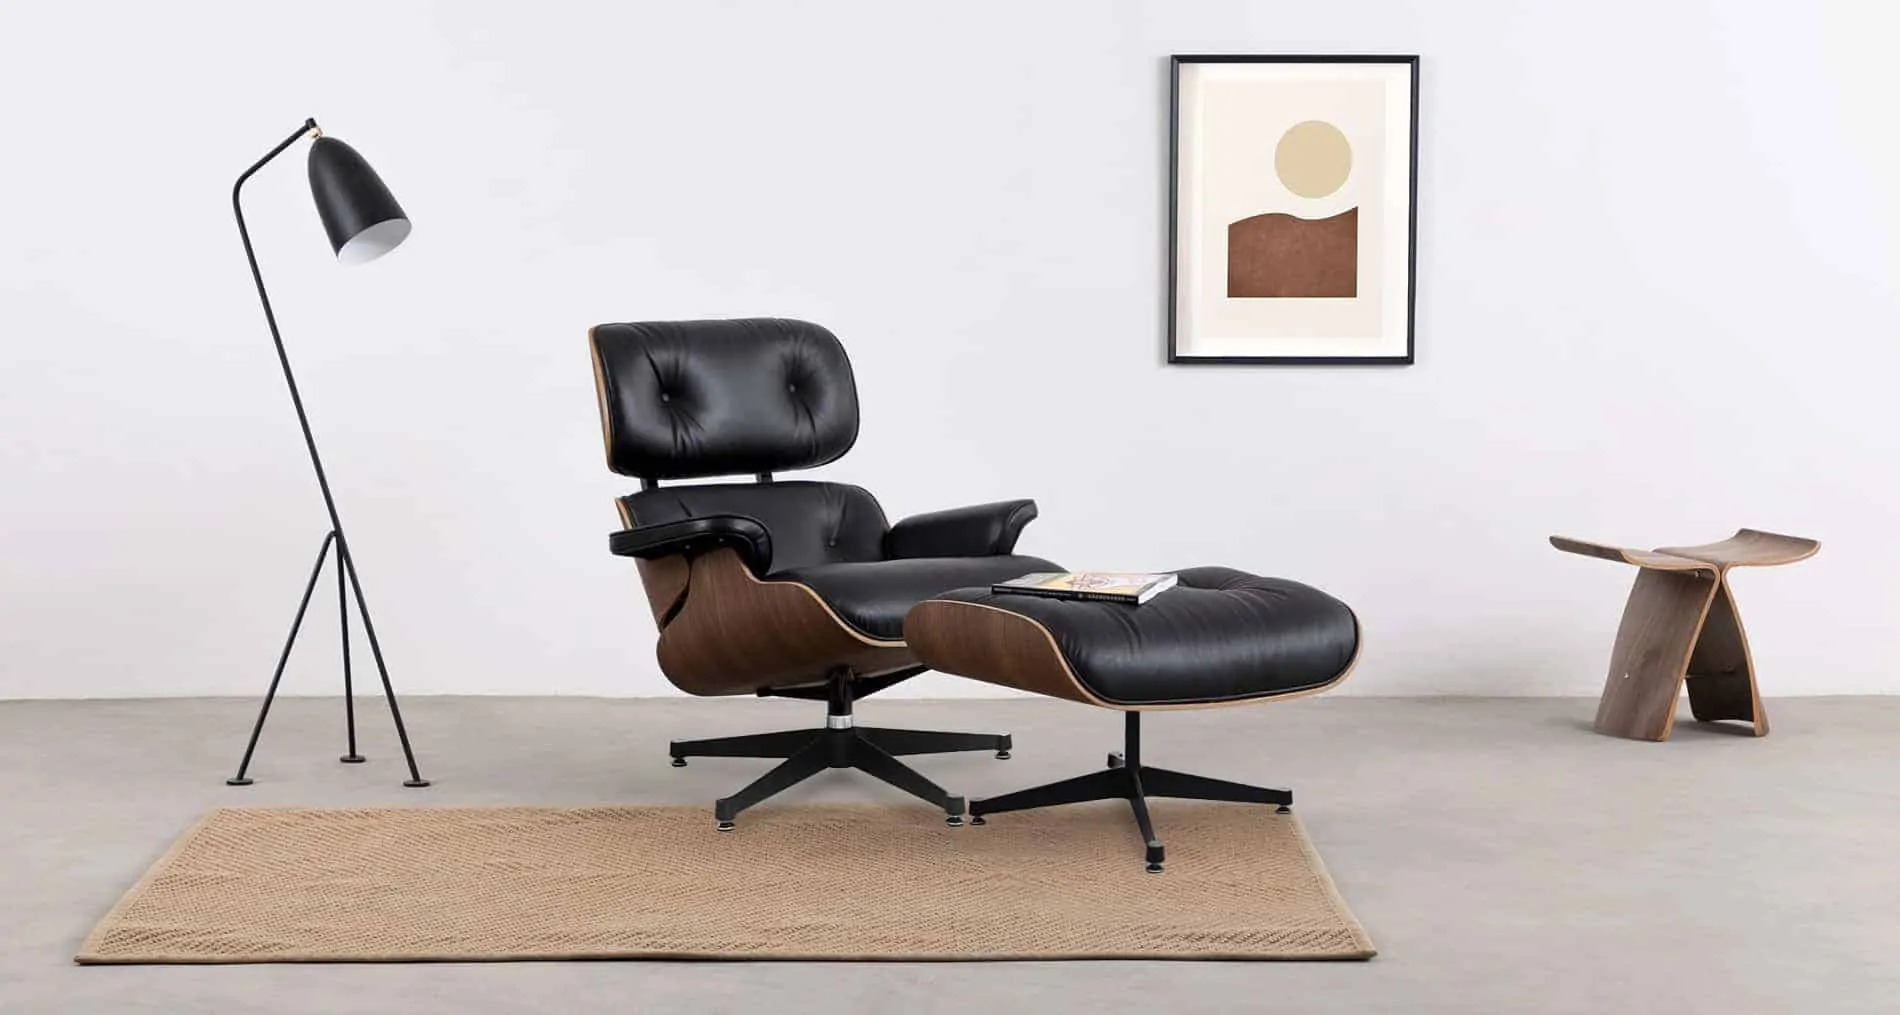 Chair Eames The Lounge Chair - Bykallevig